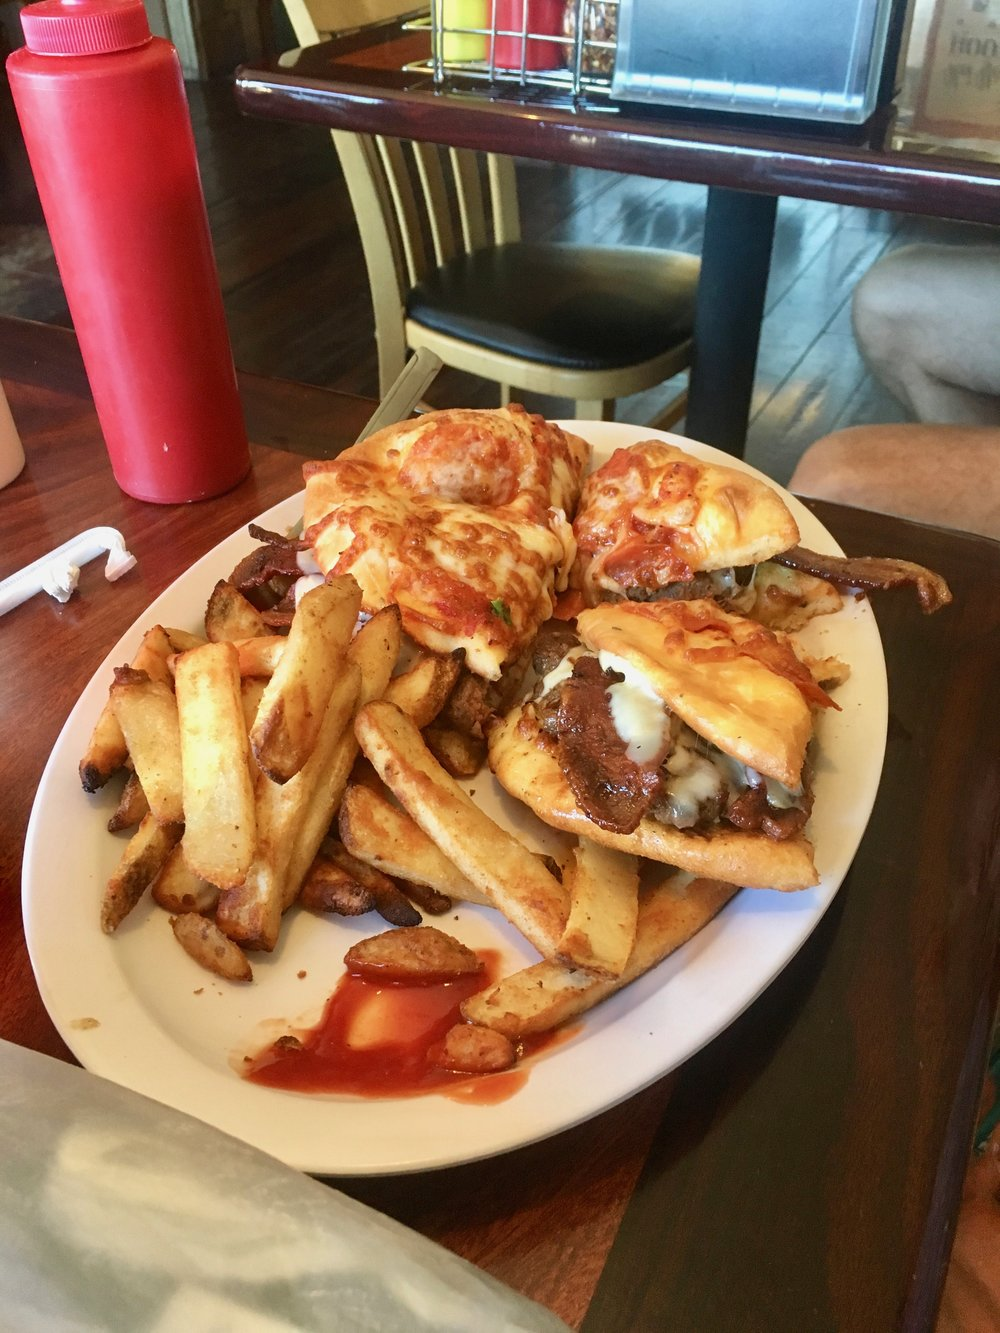 "This is the ""hiker trash burger"" found in Cascade Locks, OR. It is a bacon cheeseburger with personal pepperoni pizzas in place of buns and a side of fries."